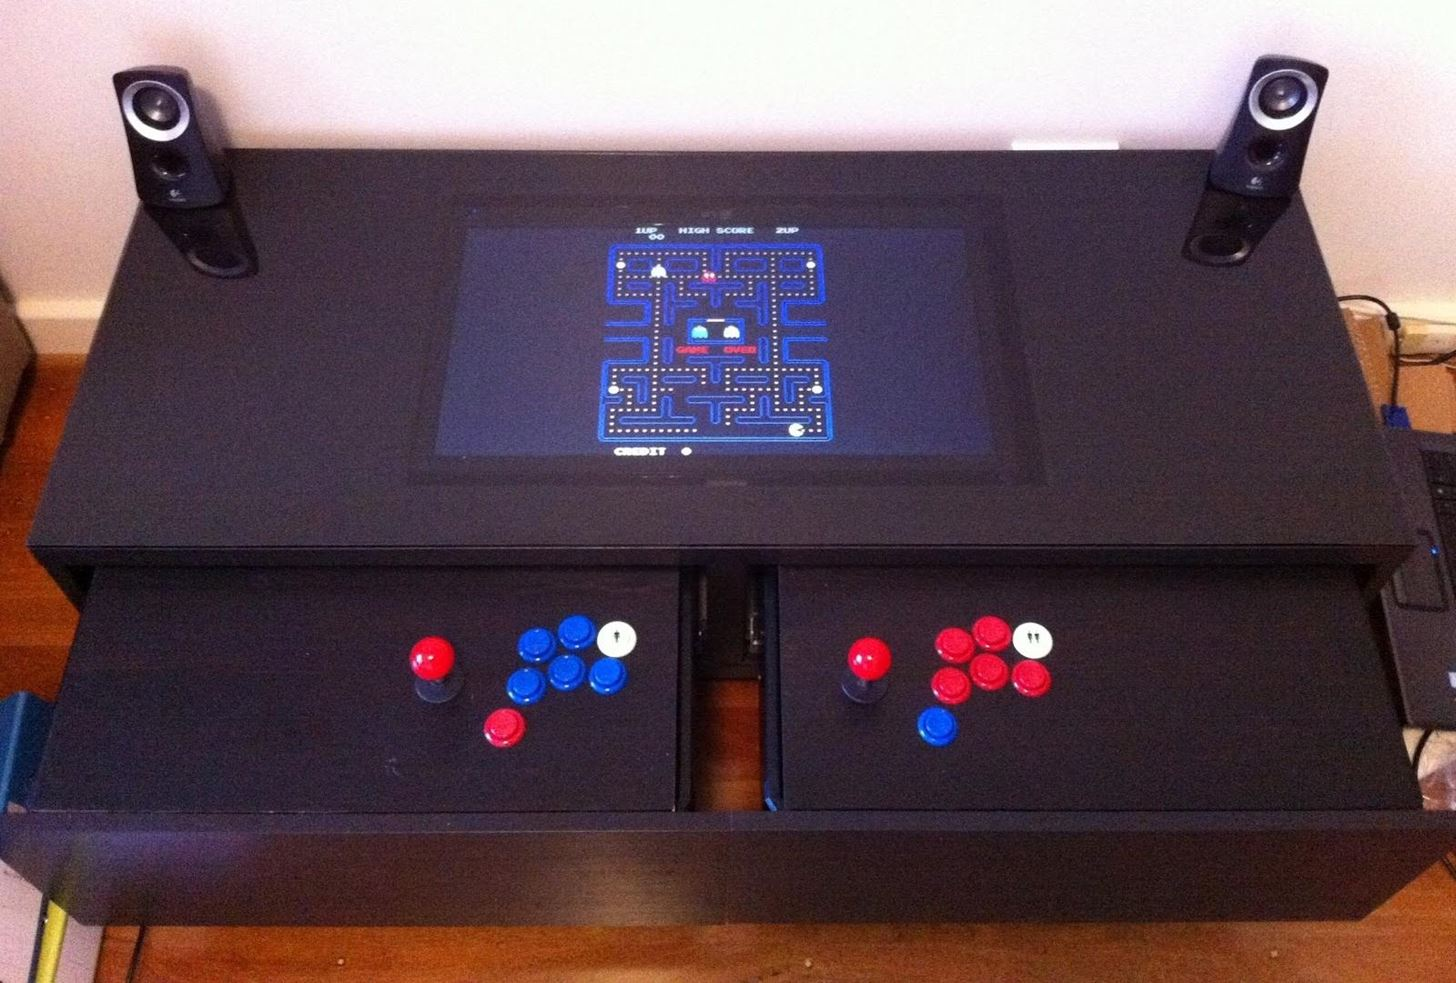 Disguise Your Gaming Addiction with This DIY Coffee Table Arcade Machine